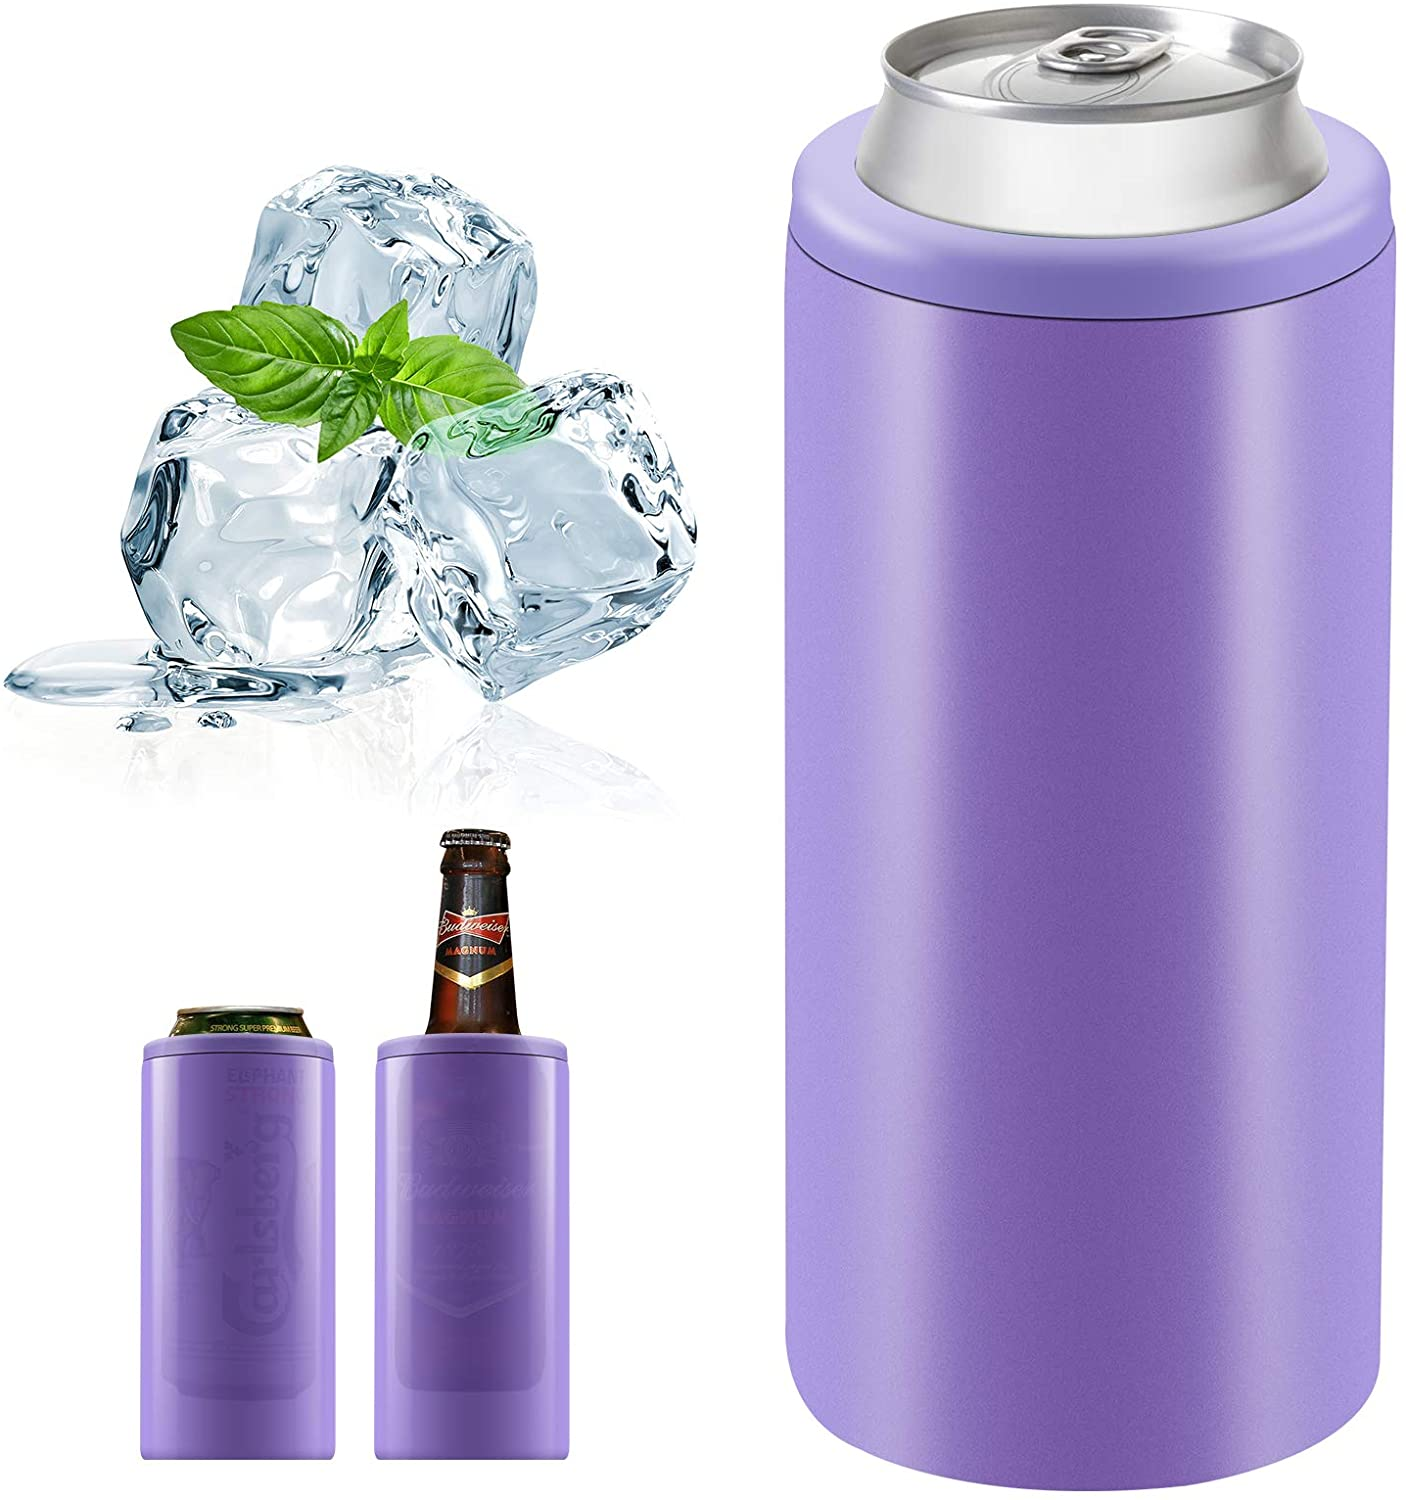 12oz Skinny Can Cooler Double-Walled Vacuum Insulated Slim Can